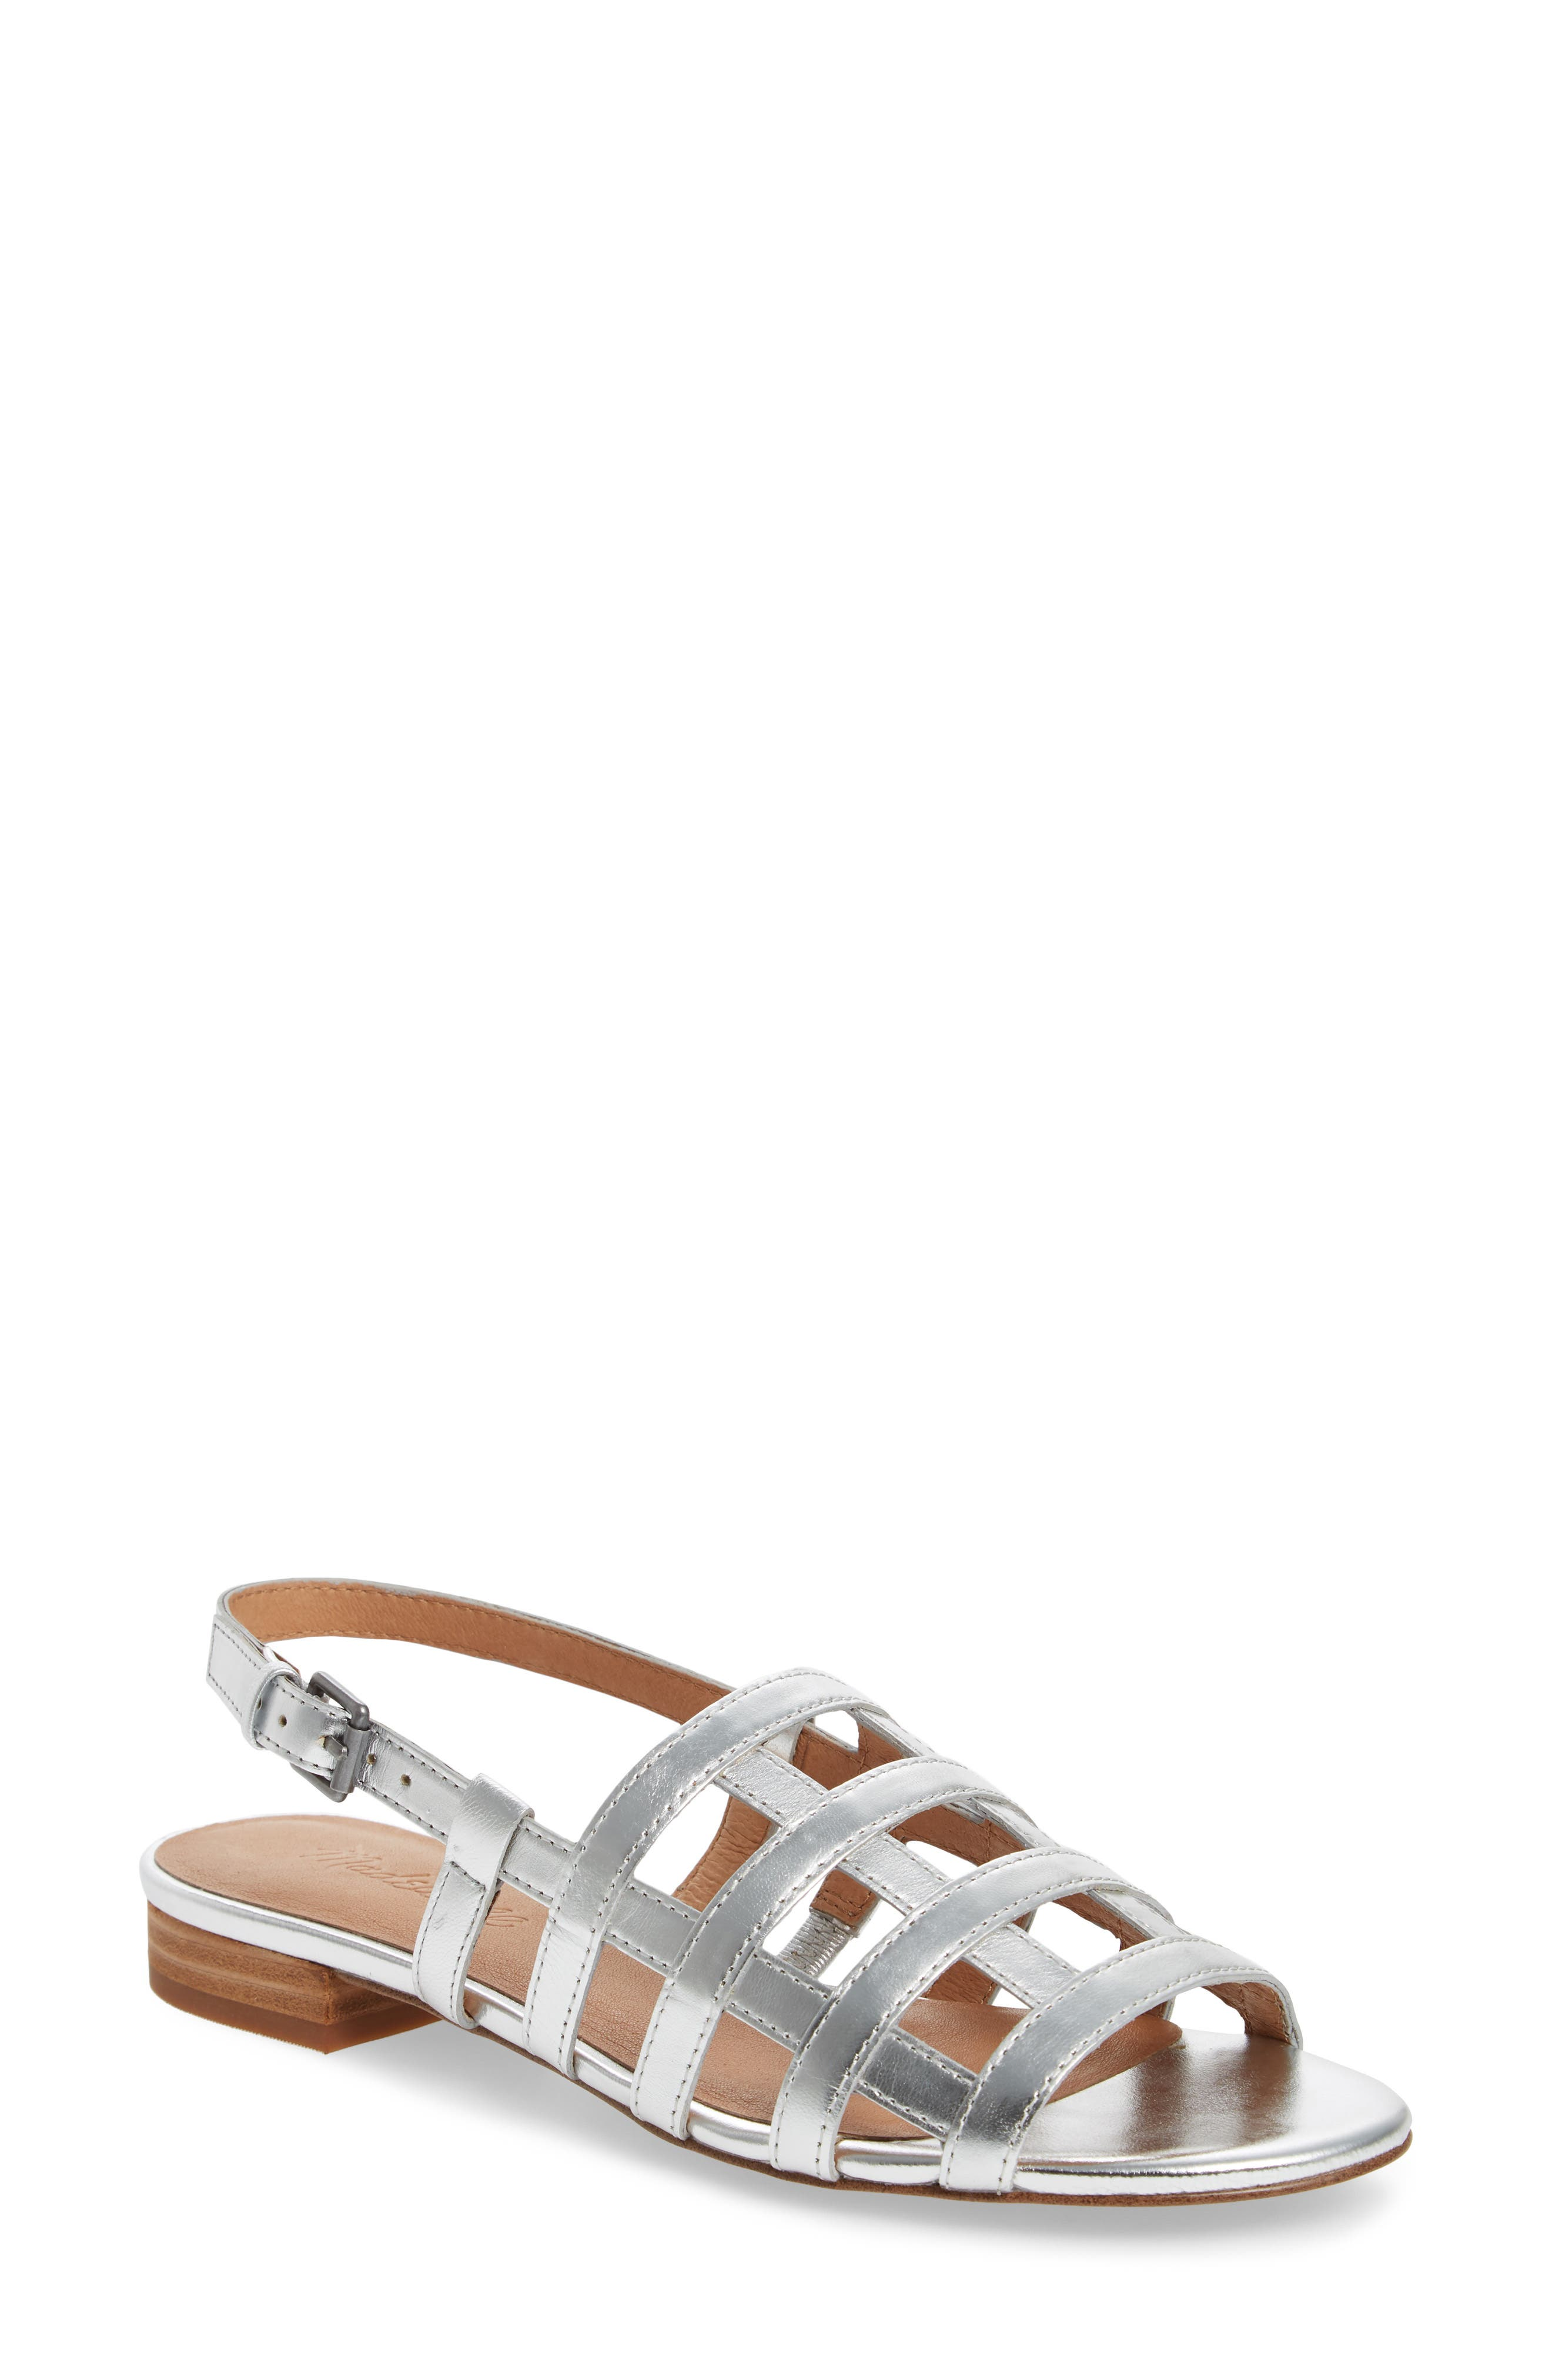 Rowan Cage Sandal,                             Main thumbnail 1, color,                             Silver Metallic Leather